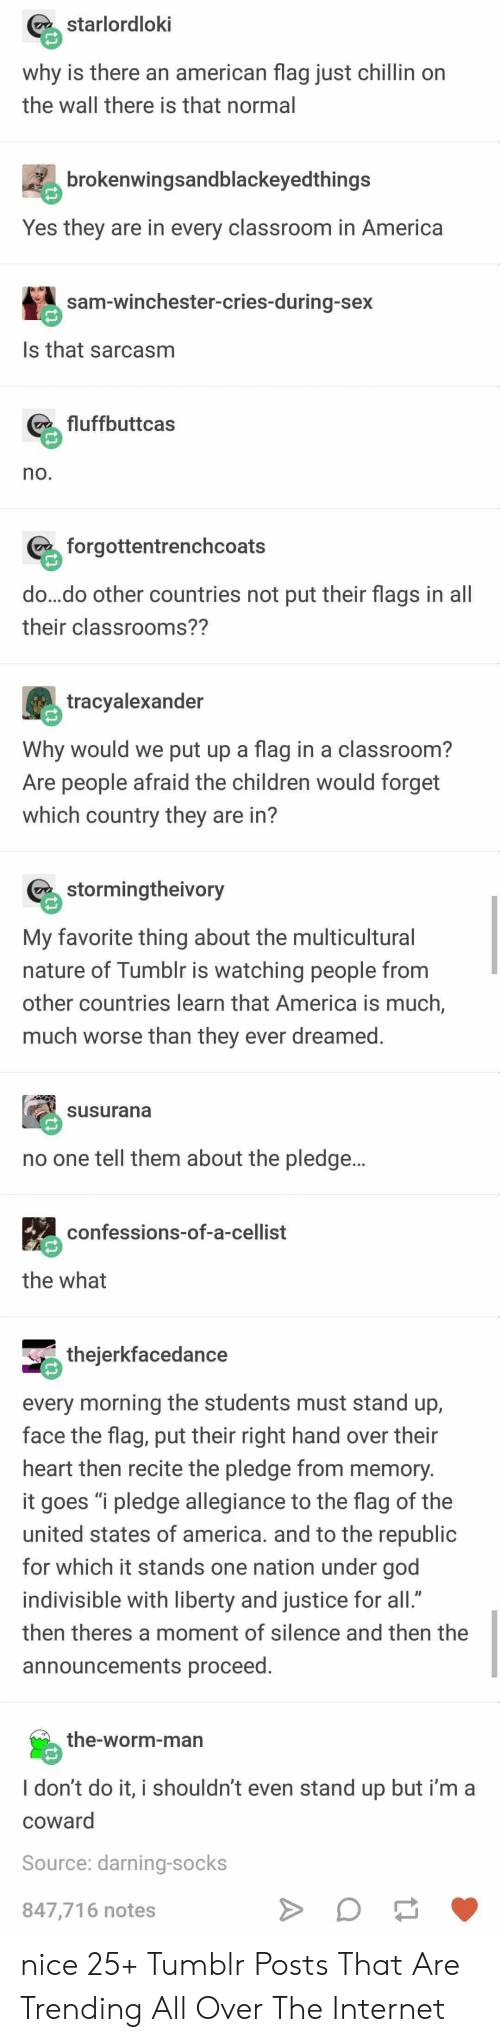 """America, Children, and God: starlordloki  why is there an american flag just chillin on  the wall there is that normal  brokenwingsandblackeyedthings  Yes they are in every classroom in America  sam-winchester-cries-during-sex  Is that sarcasm  fluffbuttcas  no.  forgottentrenchcoats  do...do other countries not put their flags in all  their classrooms??  tracyalexander  Why would we put up a flag in a classroom?  Are people afraid the children would forget  which country they are in?  stormingtheivory  My favorite thing about the multicultural  nature of Tumblr is watching people from  other countries learn that America is much,  much worse than they ever dreamed.  susurana  no one tell them about the pledge...  confessions-of-a-cellist  the what  thejerkfacedance  every morning the students must stand up,  face the flag, put their right hand over their  heart then recite the pledge from memory.  it goes """"i pledge allegiance to the flag of the  united states of america. and to the republic  for which it stands one nation under god  indivisible with liberty and justice for all.""""  then theres a moment of silence and then the  announcements proceed.  the-worm-man  I don't do it, i shouldn't even stand up but i'm a  coward  Source: darning-socks  847,716 notes nice 25+ Tumblr Posts That Are Trending All Over The Internet"""